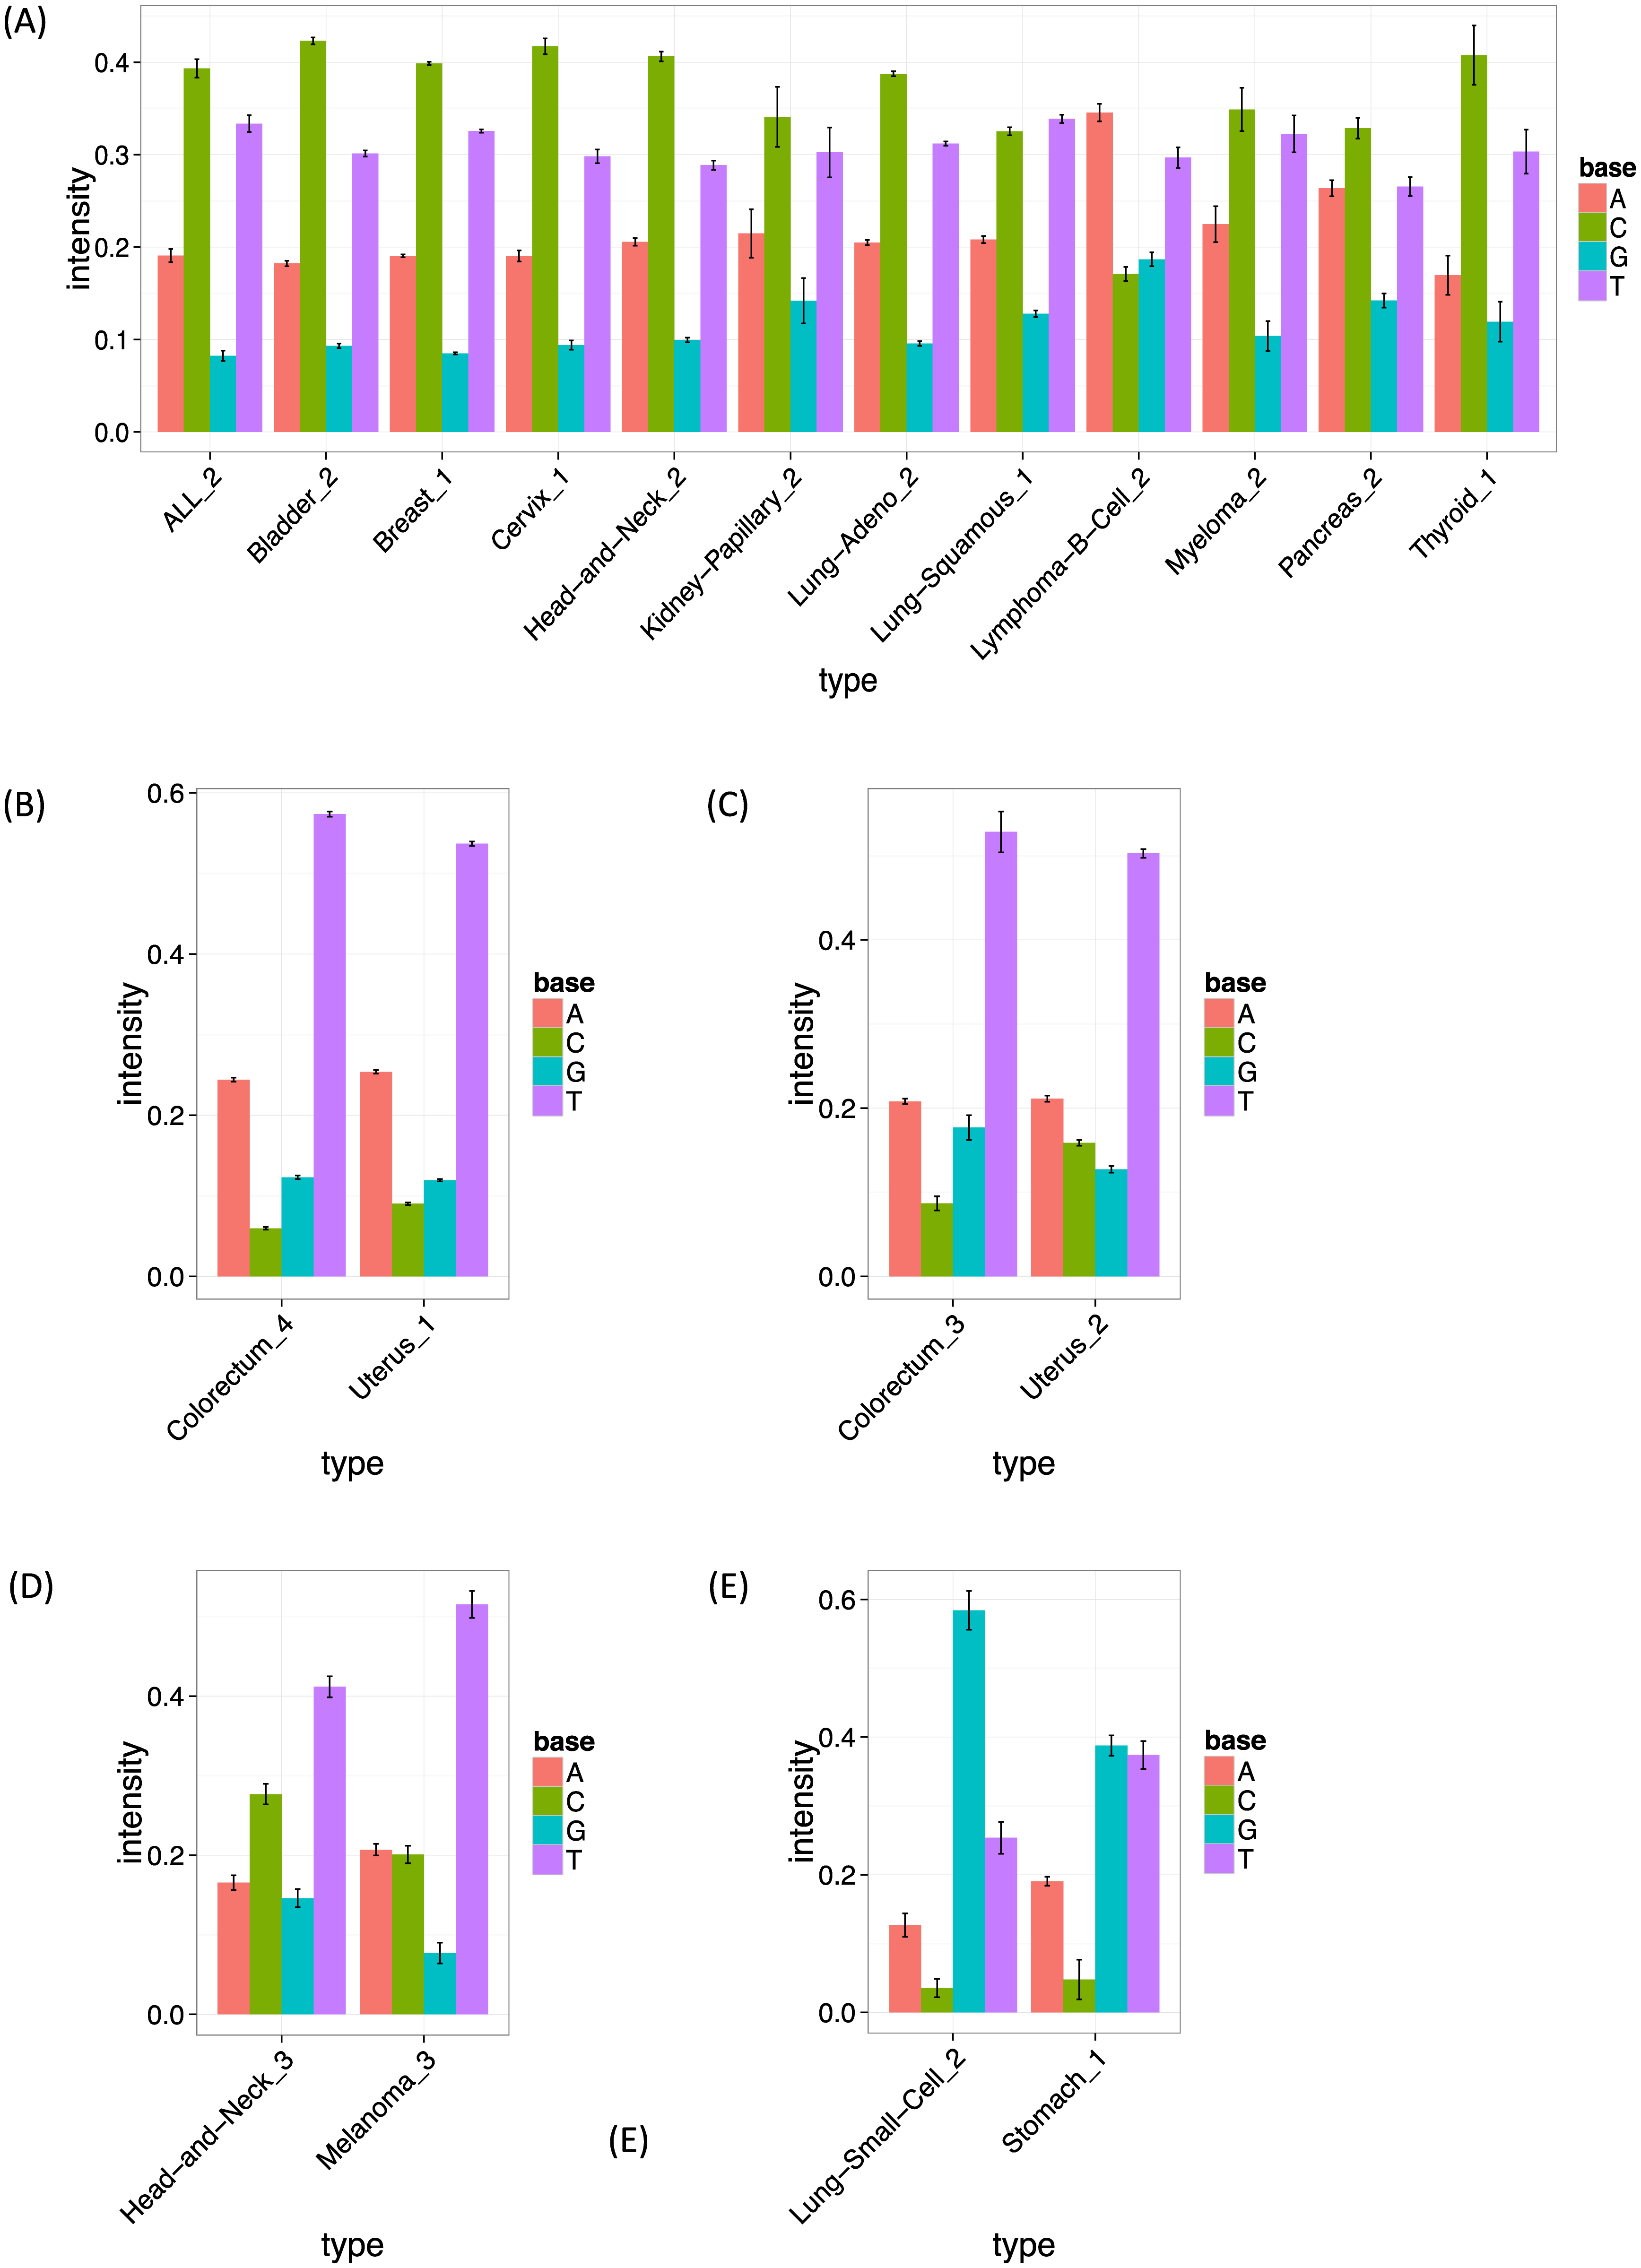 The estimated frequencies of bases at two 5′ to the mutated site for each cancer type.